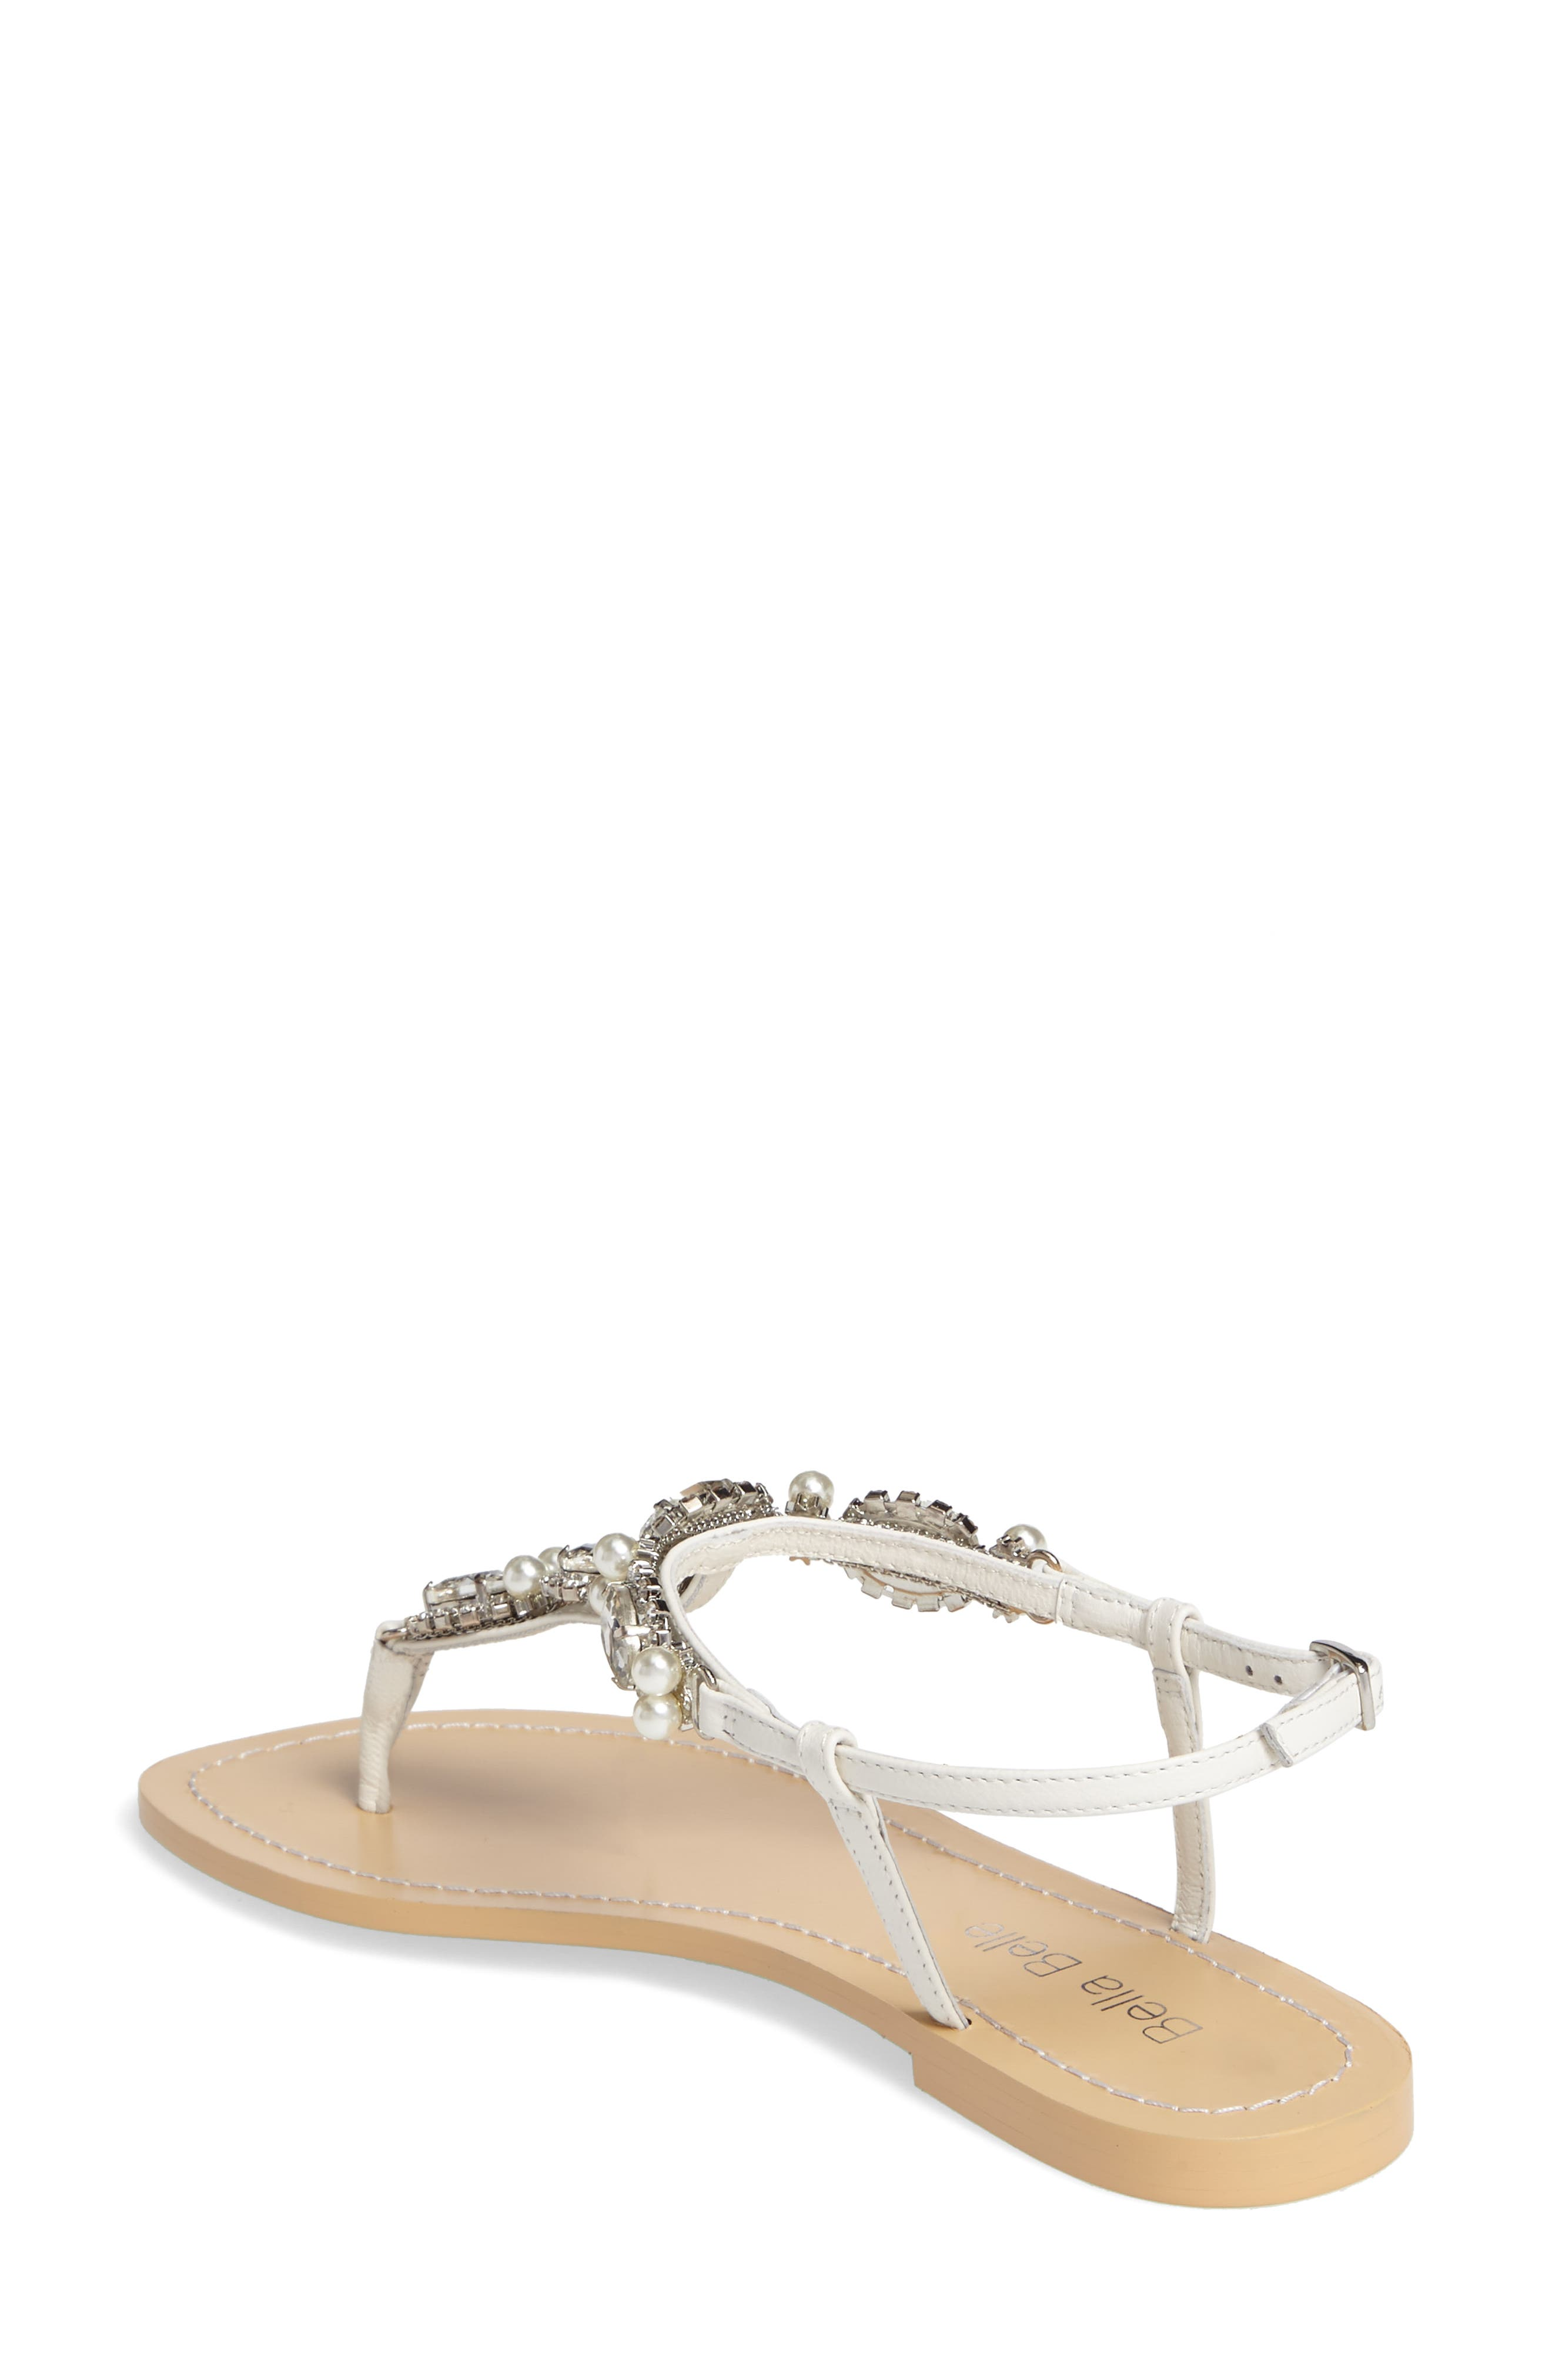 Hera Embellished T-Strap Sandal,                             Alternate thumbnail 2, color,                             OFF WHITE LEATHER